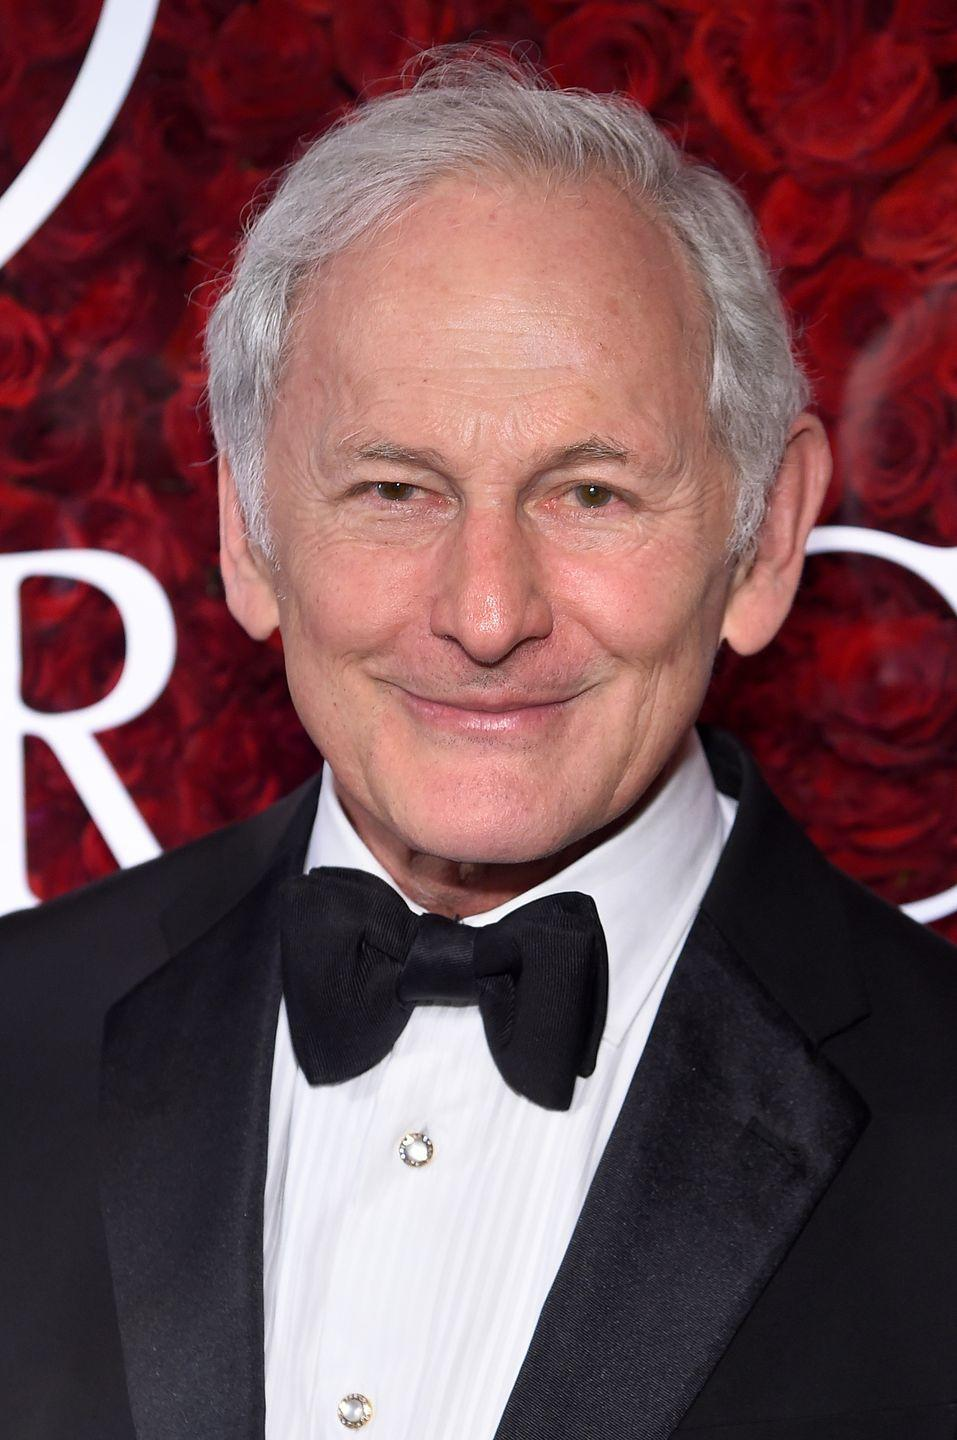 <p>Garber looks the exact same as he did in 1986, except now the <em>Titanic </em>actor has all white hair. </p>